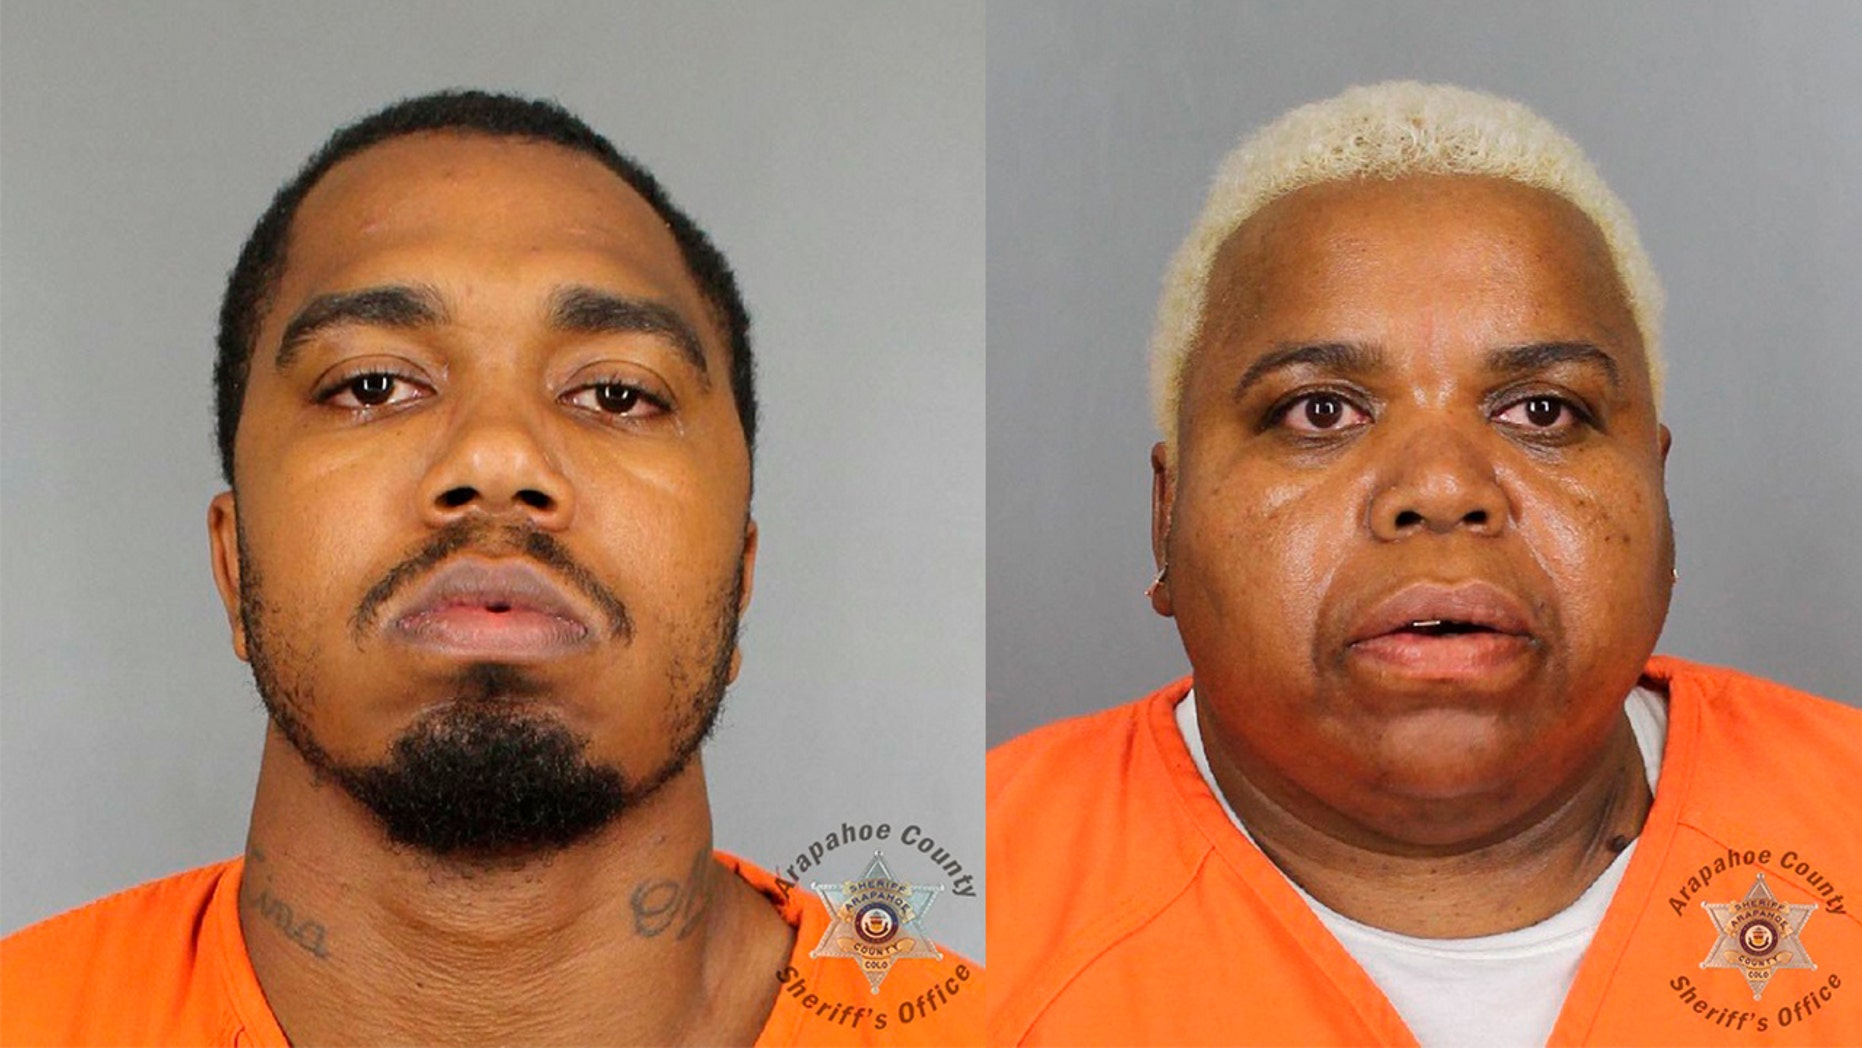 Terance Black and Tina Black were both sentenced to life in prison, authorities say, (Arapahoe County Sheriff's Office via AP)